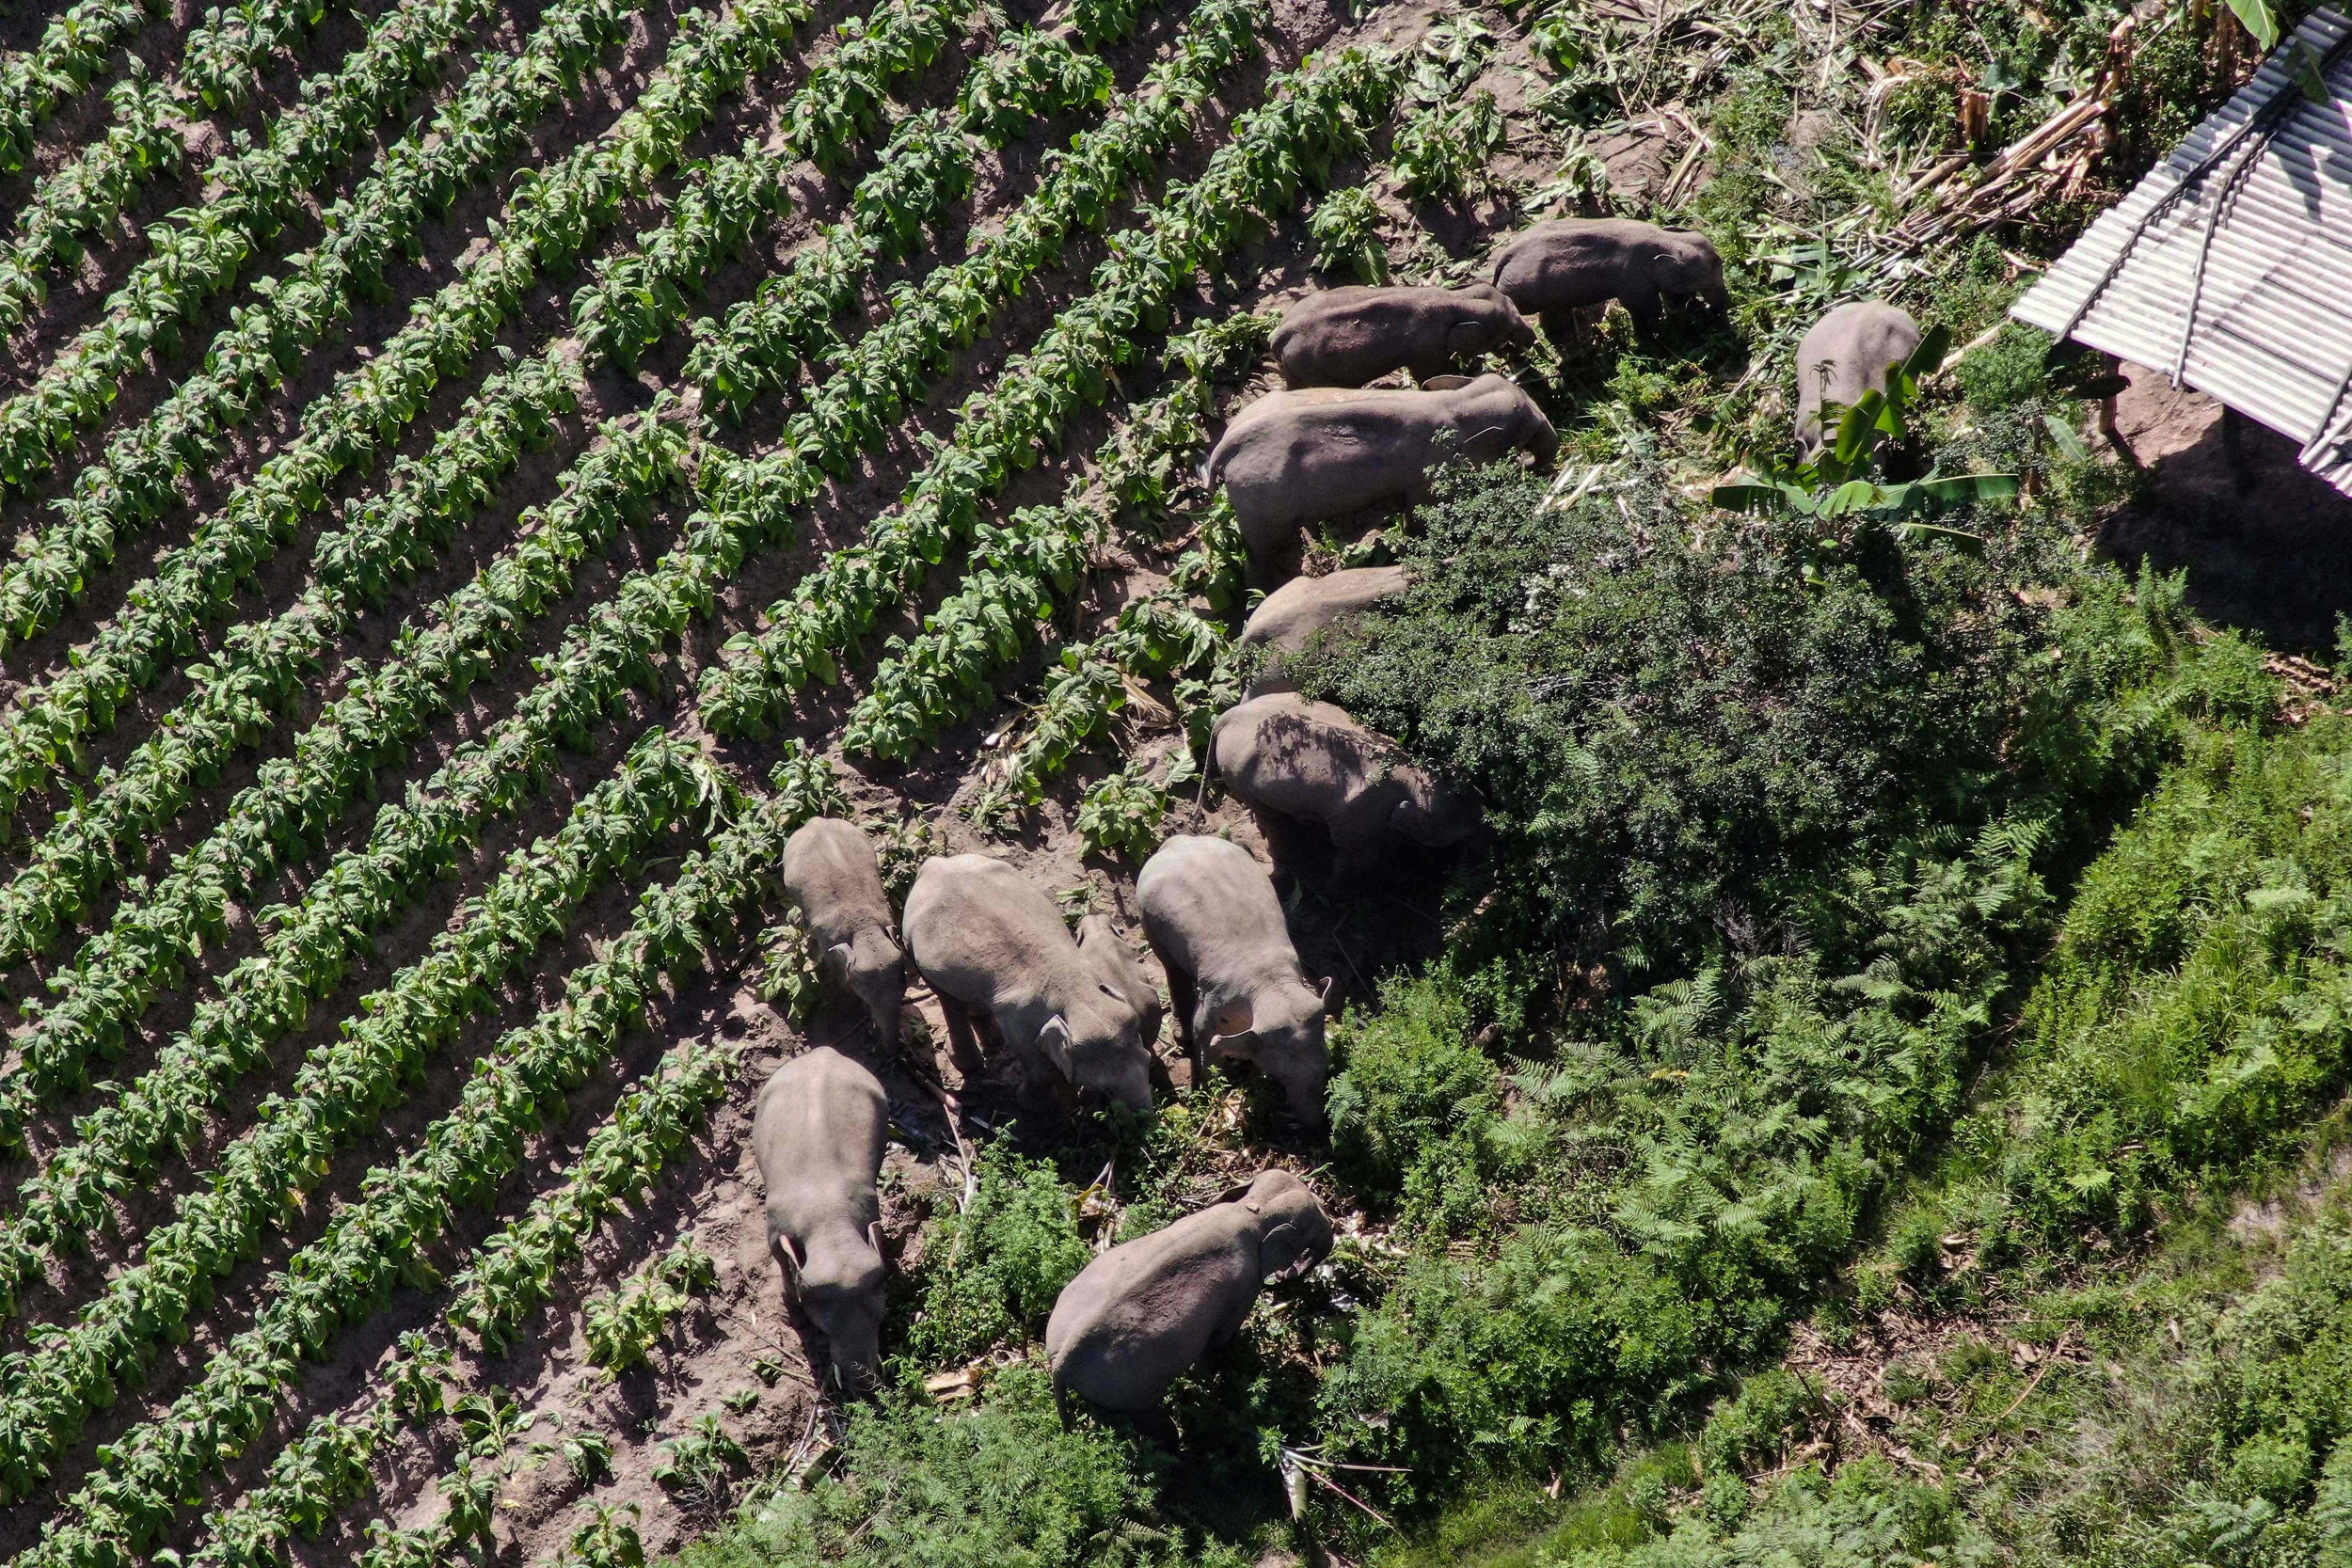 There's no place like home? China's wandering elephants may be ending their epic journey